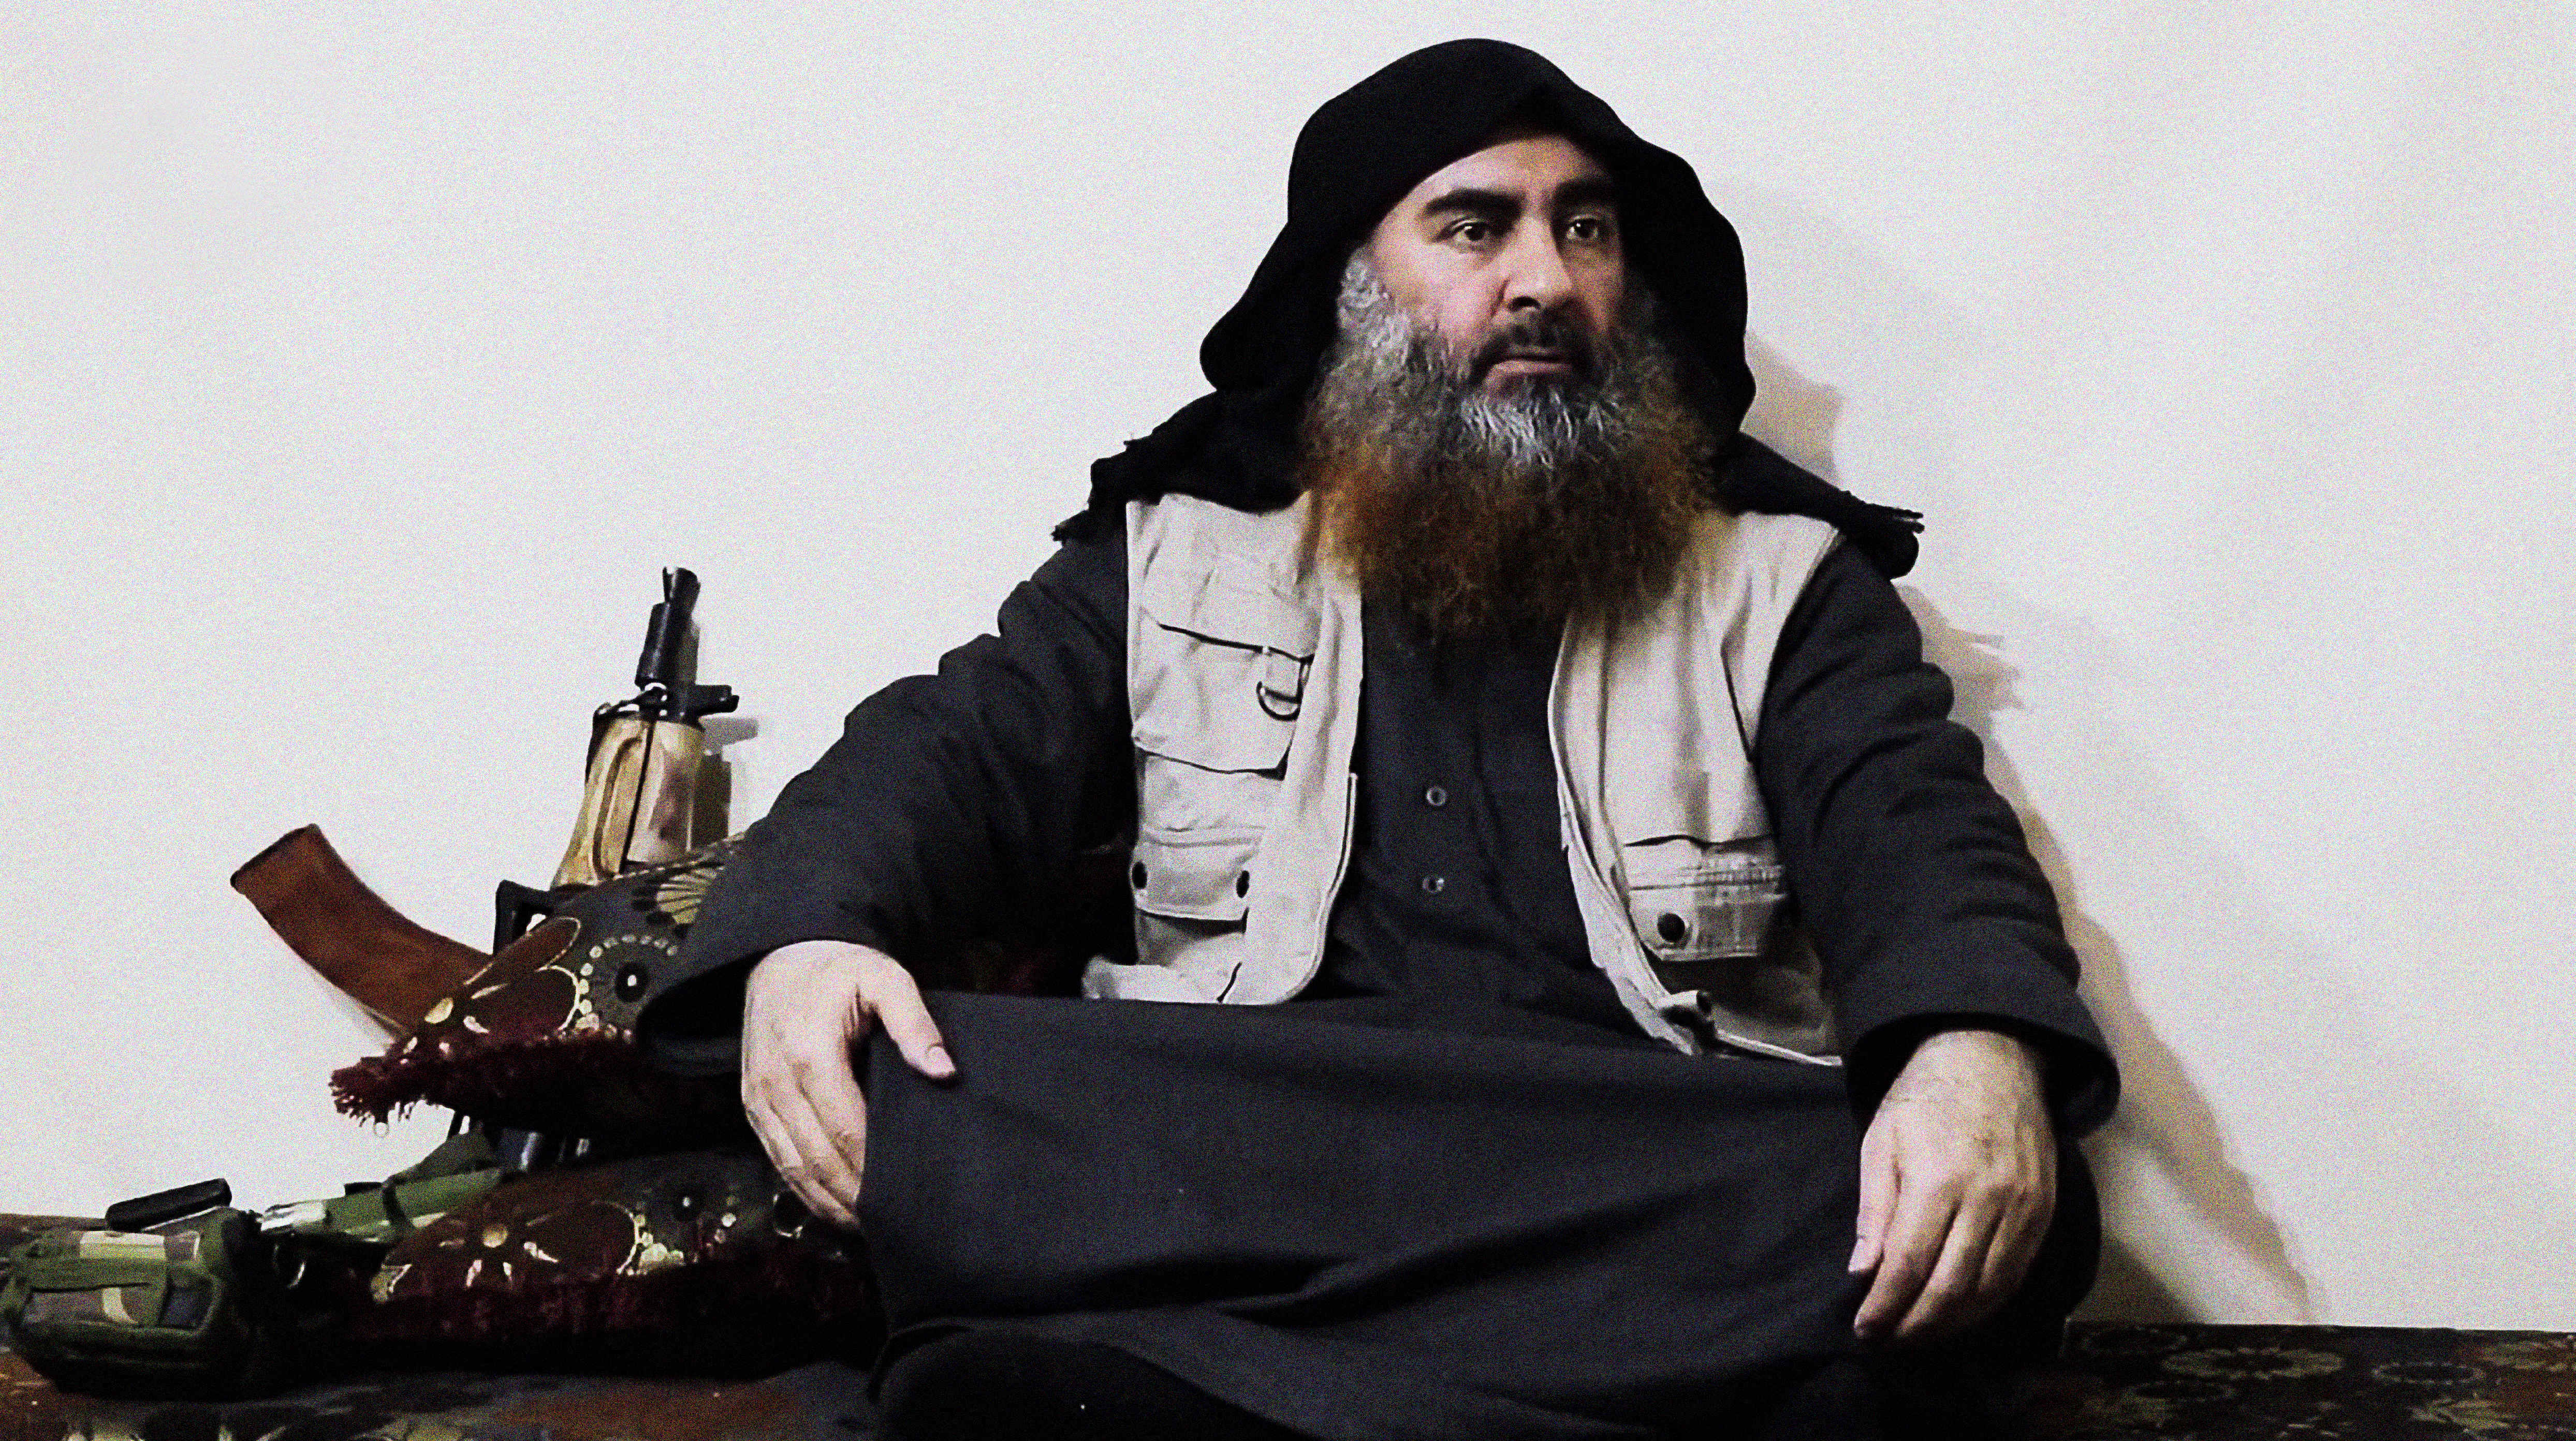 ISIS Leader Abu Bakr al-Baghdadi Reportedly Dead After US Special Ops Raid